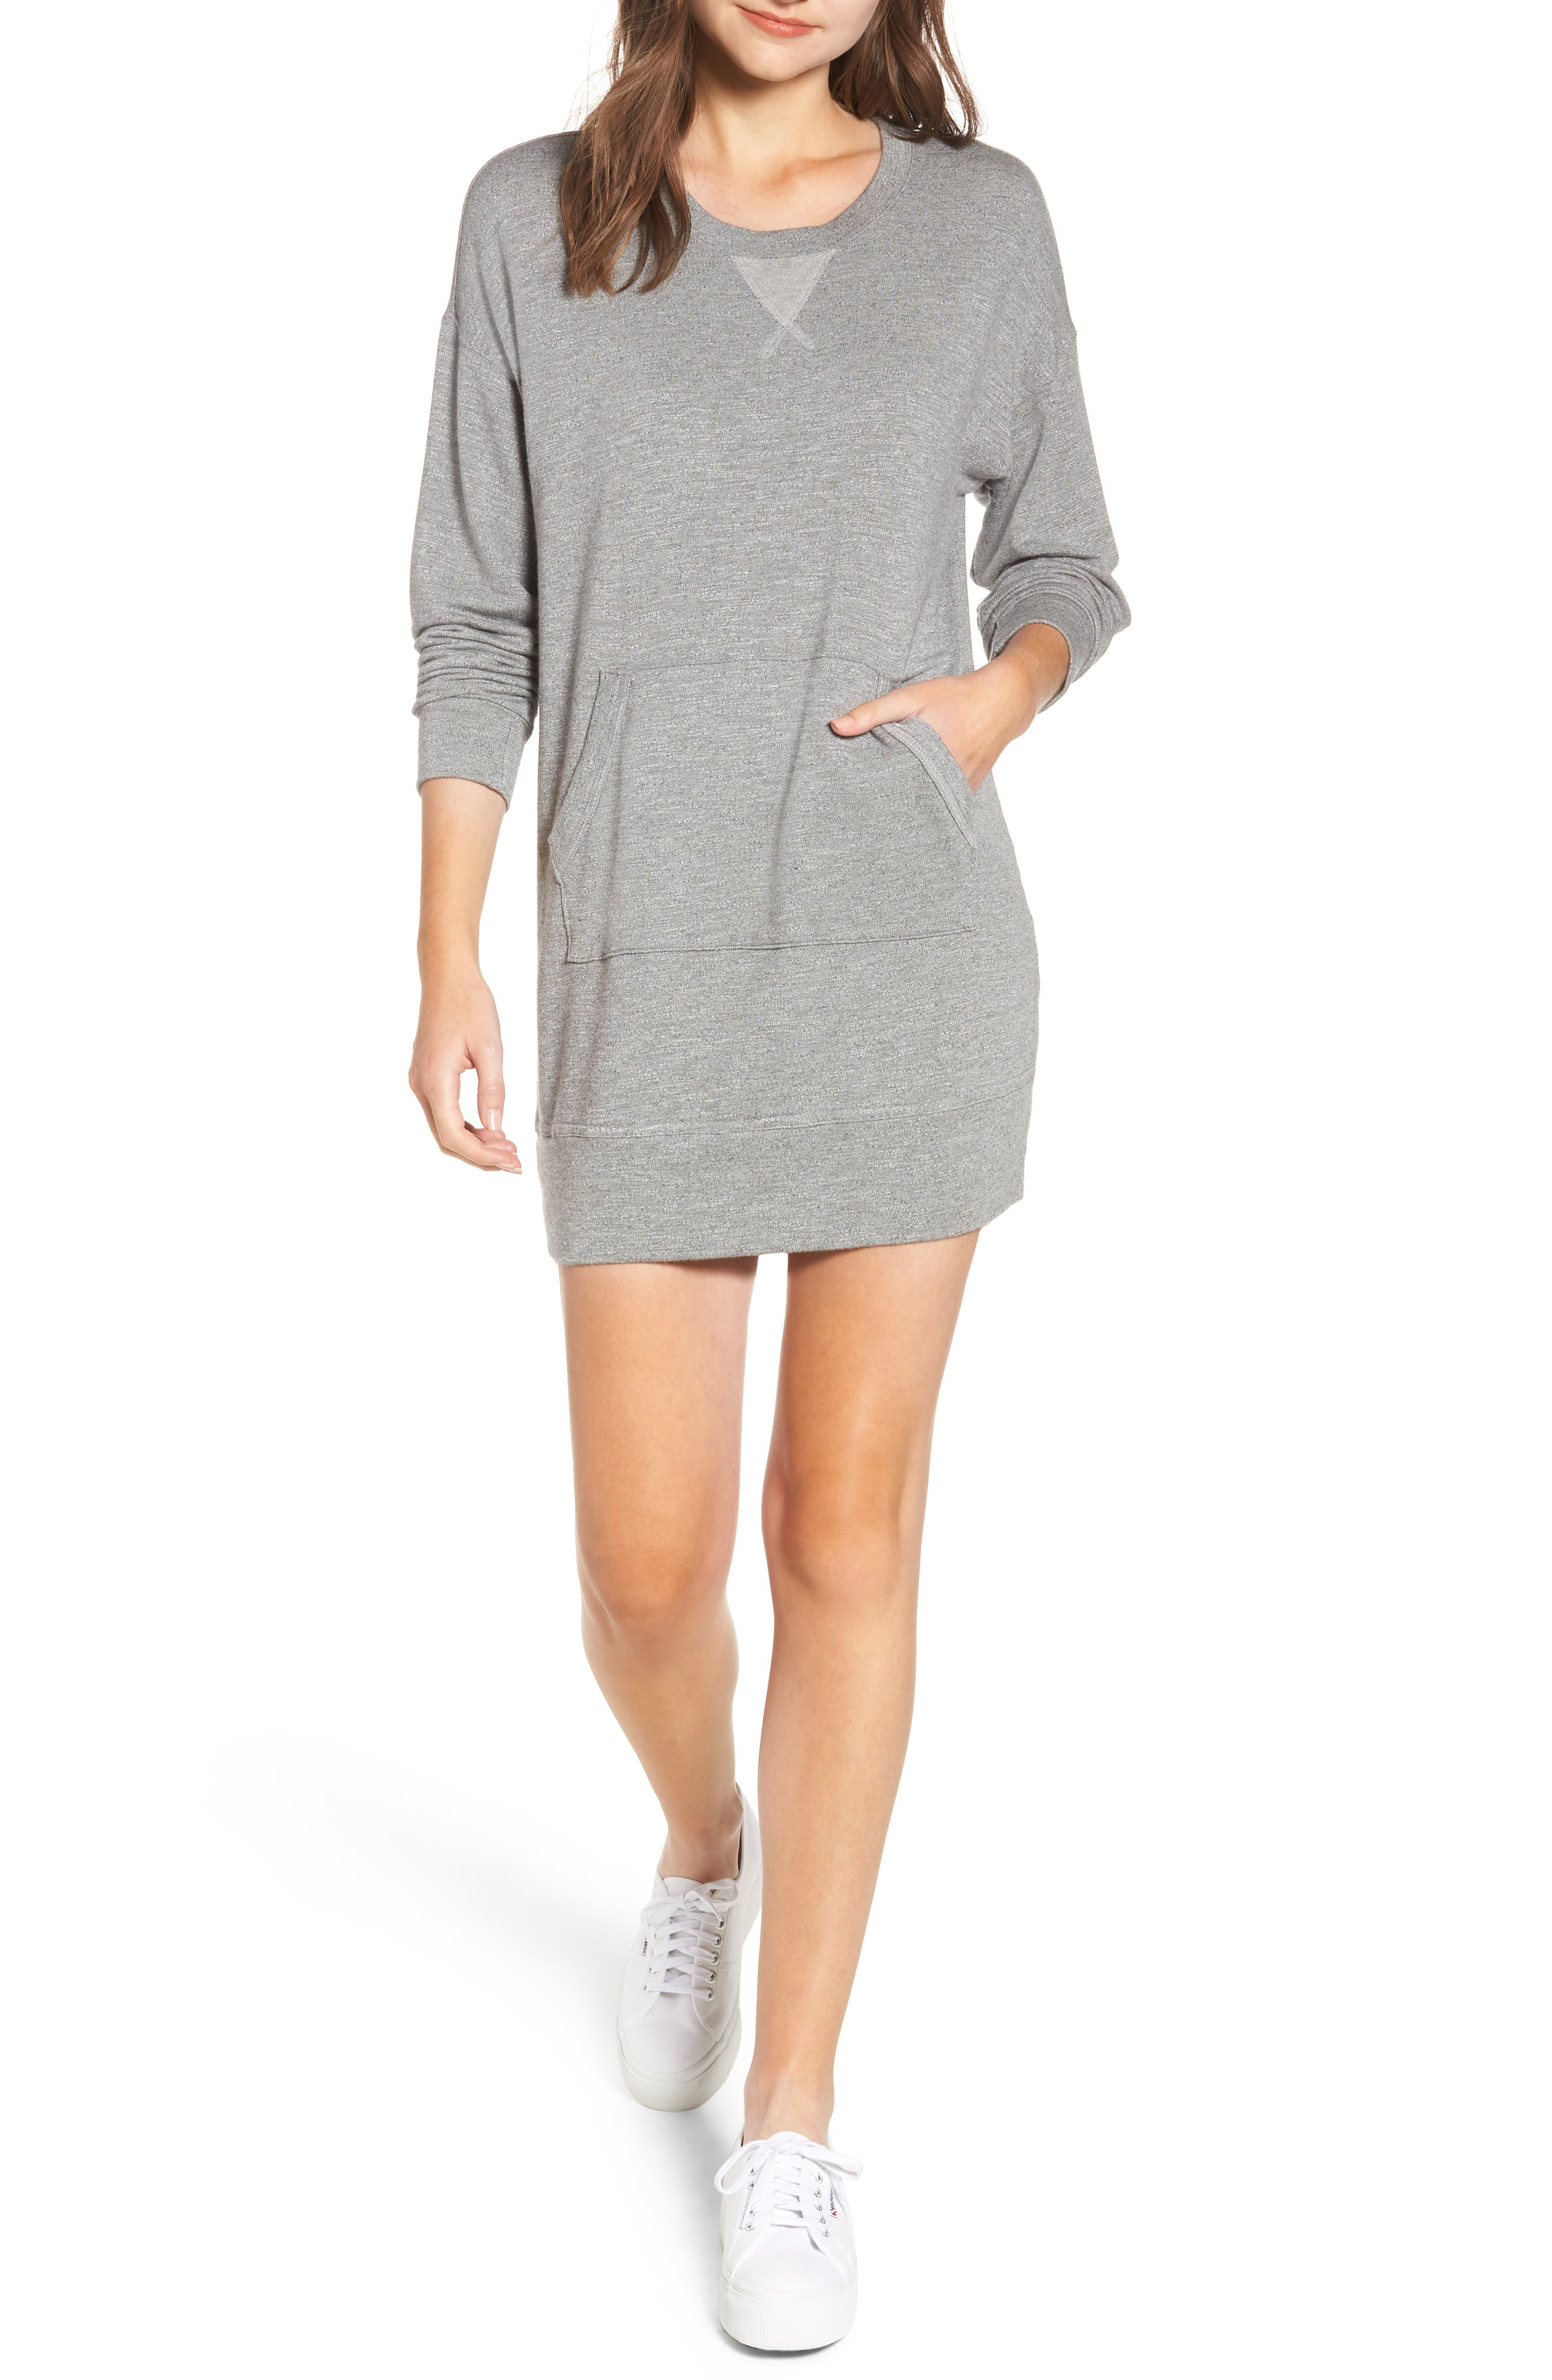 SPLENDID Classic Crewneck Pullover Sweatshirt Dress in Heather Grey